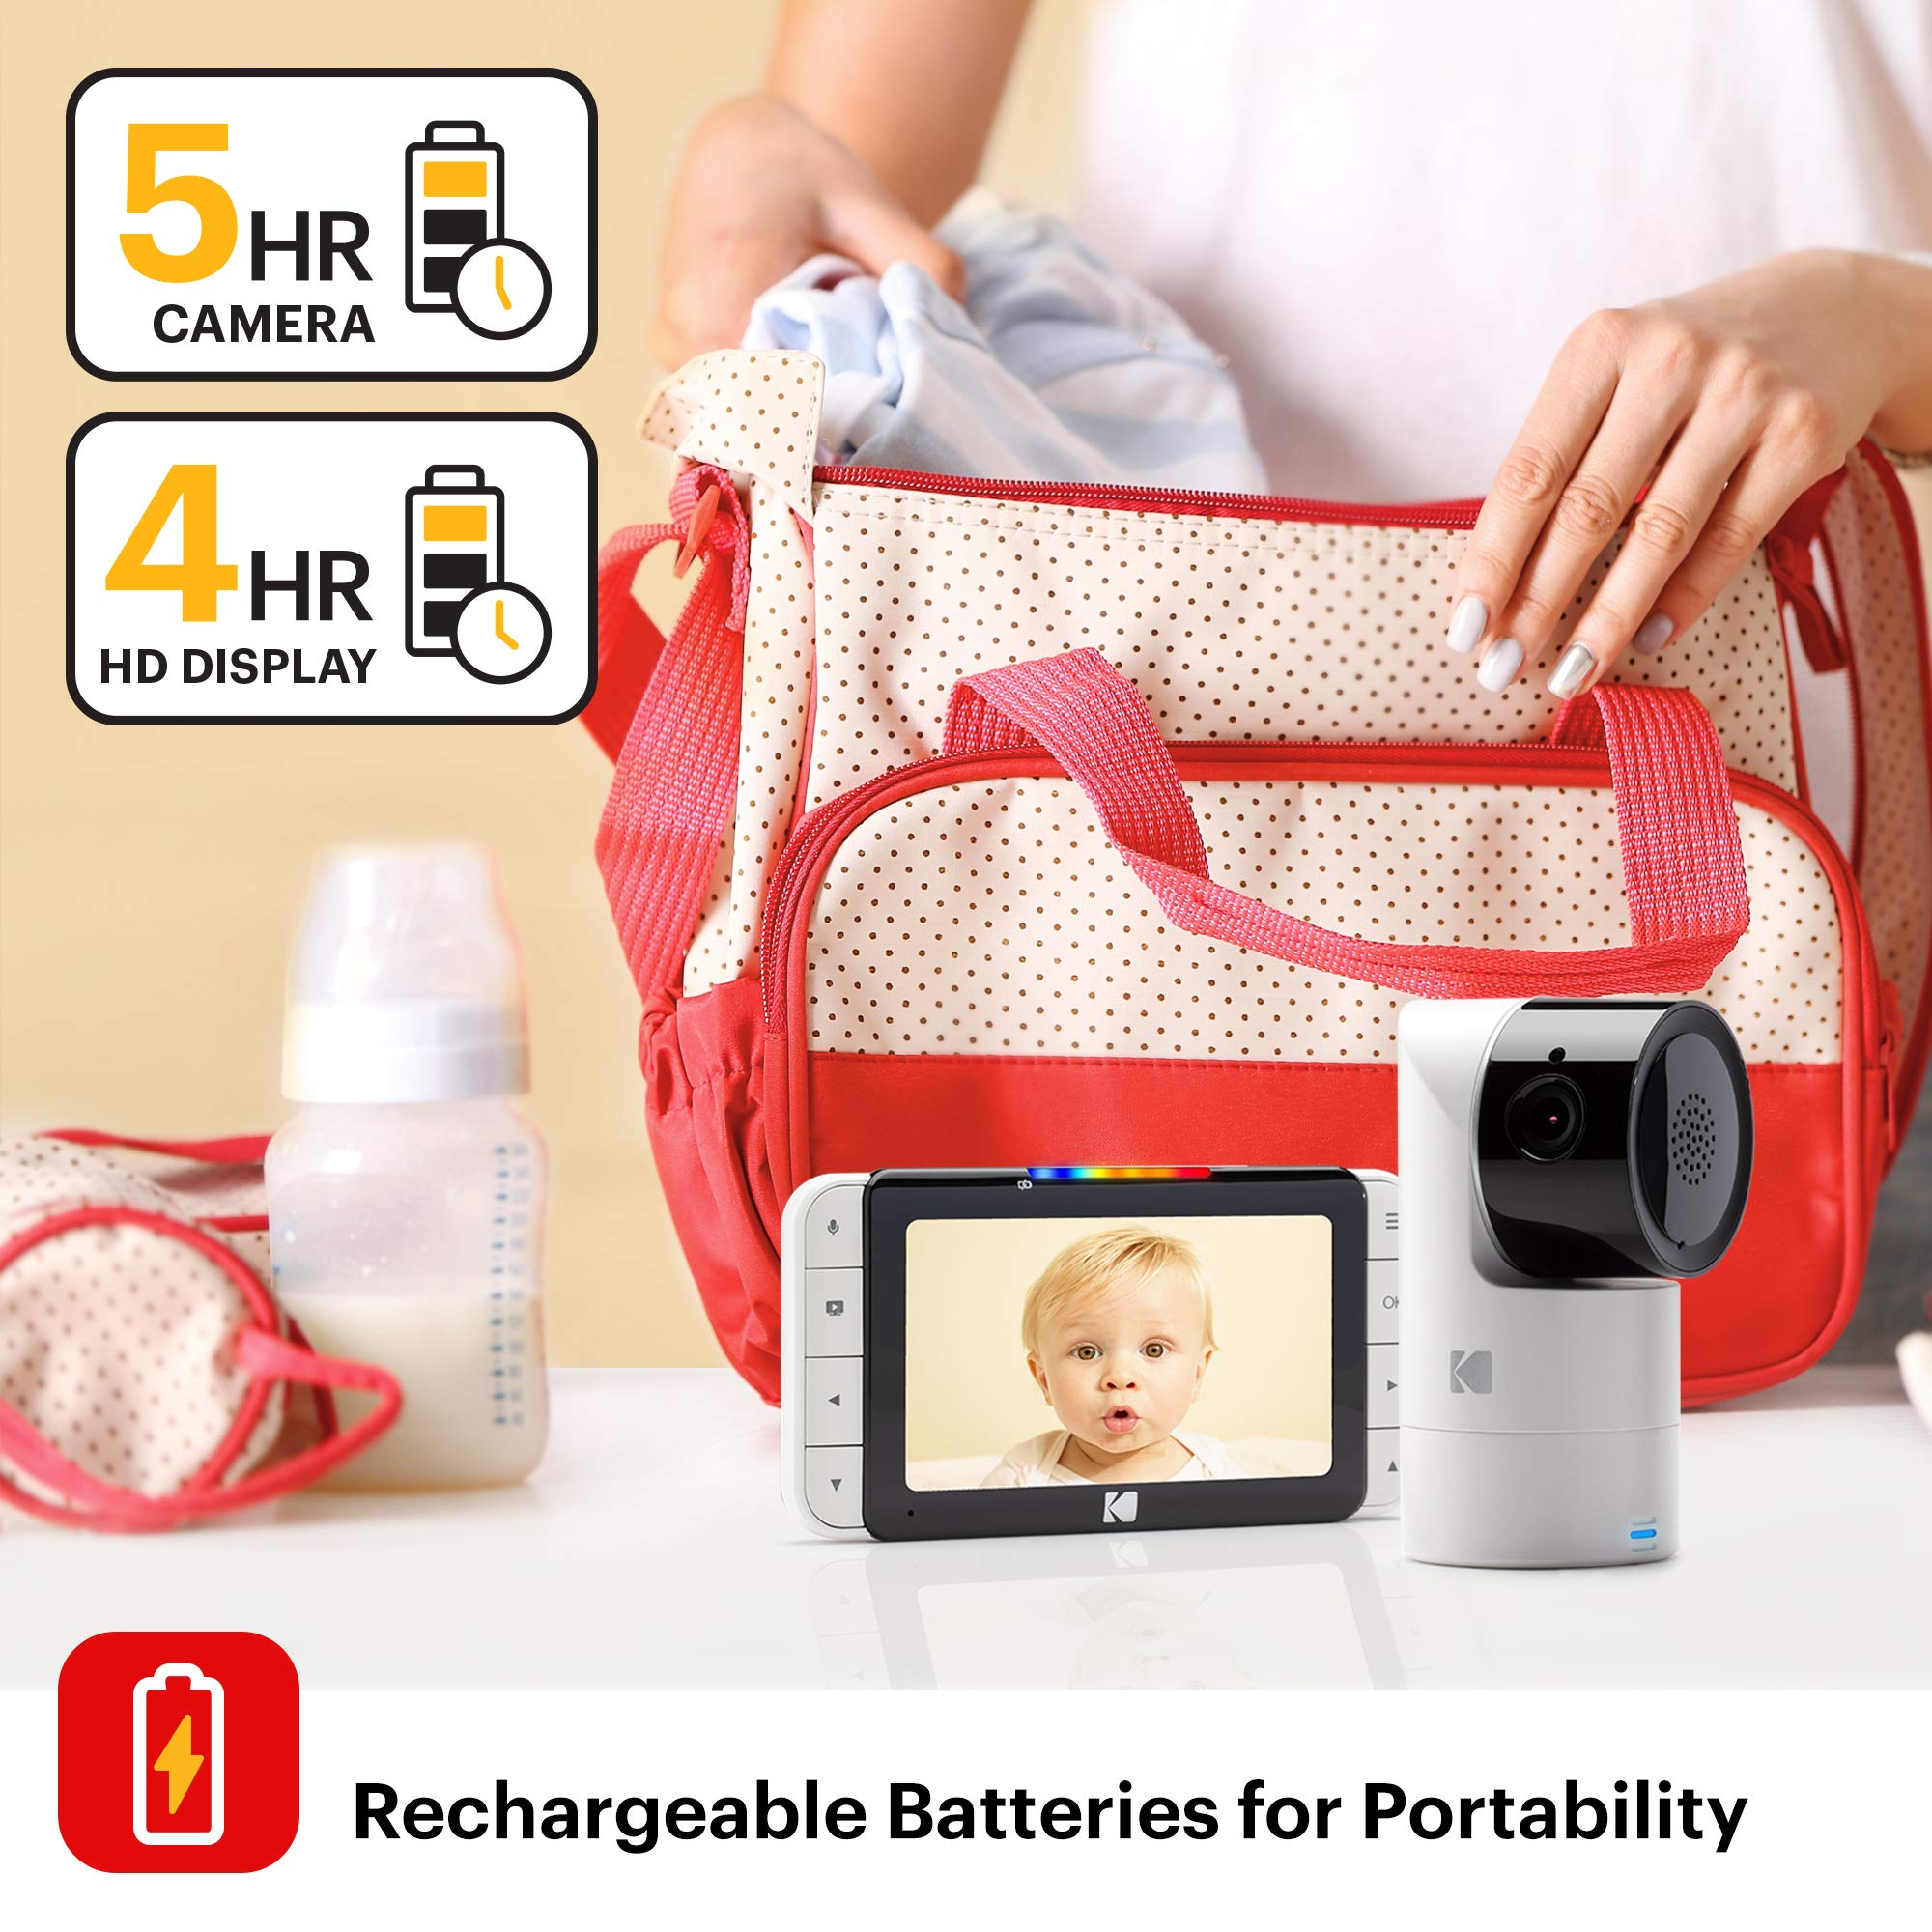 KODAK Cherish C525 Video Baby Monitor with Mobile App - 5'' HD Screen - Hi-res Baby Camera with Remote Tilt, Pan and Zoom, Two-Way Audio, Night-Vision, Long Range - WiFi Indoor Camera by Kodak (Image #6)